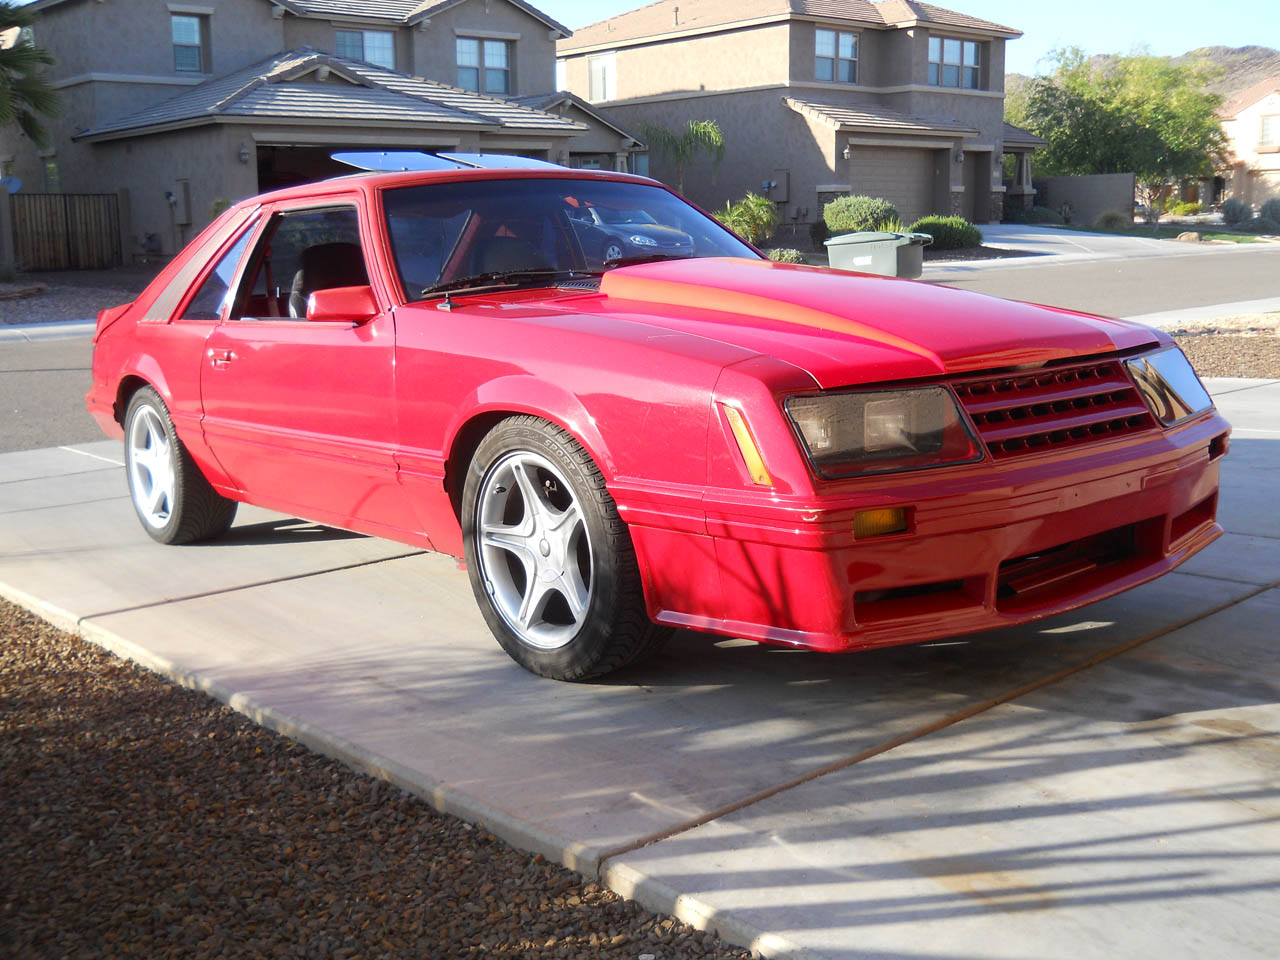 1982 Red Ford Mustang GT picture, mods, upgrades